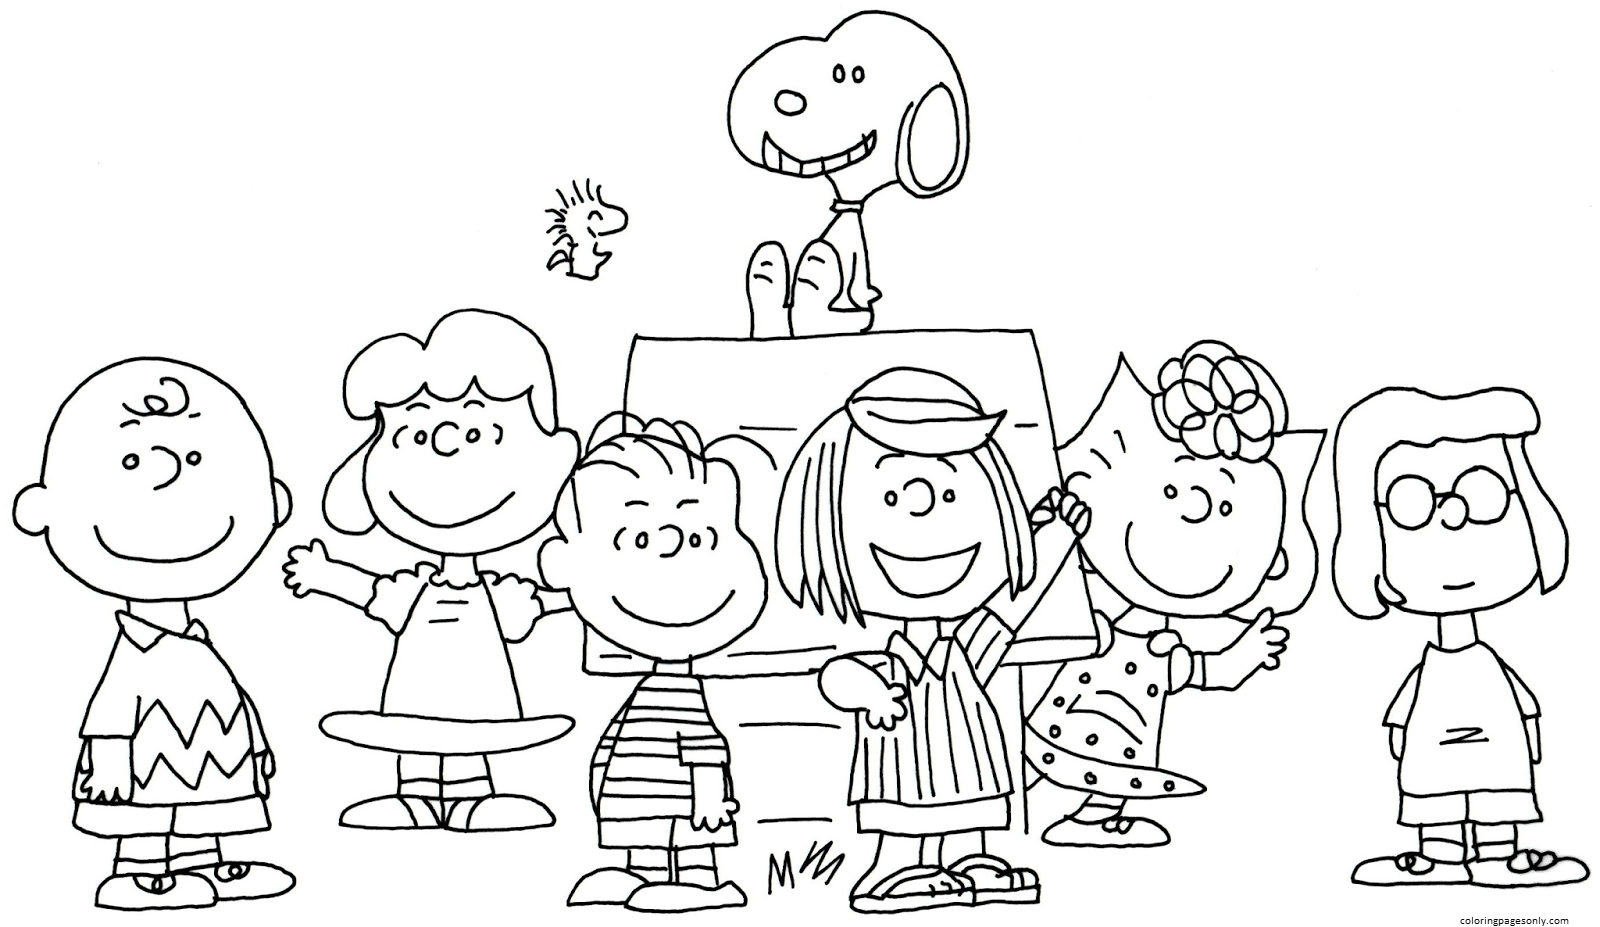 Free Charlie Brown Snoopy And Peanuts Coloring Page